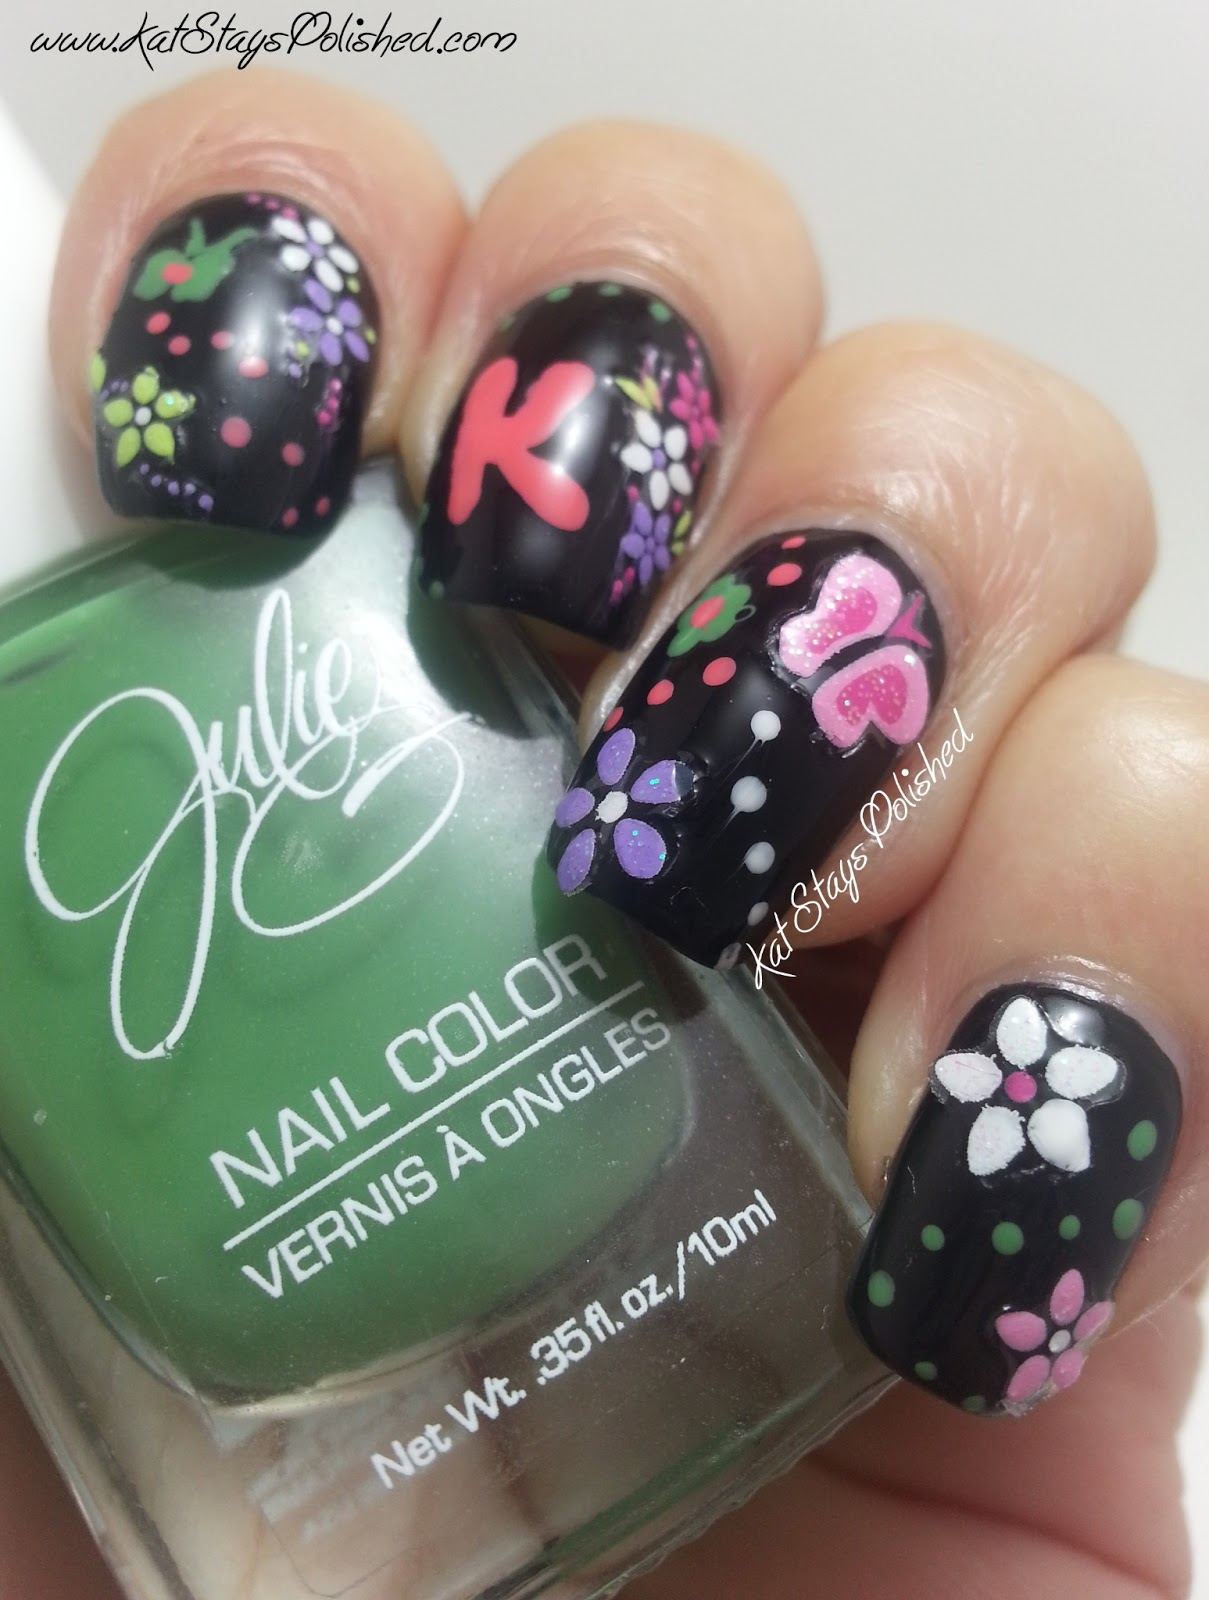 Joby nail art coupons - Screamers coupon code 2018